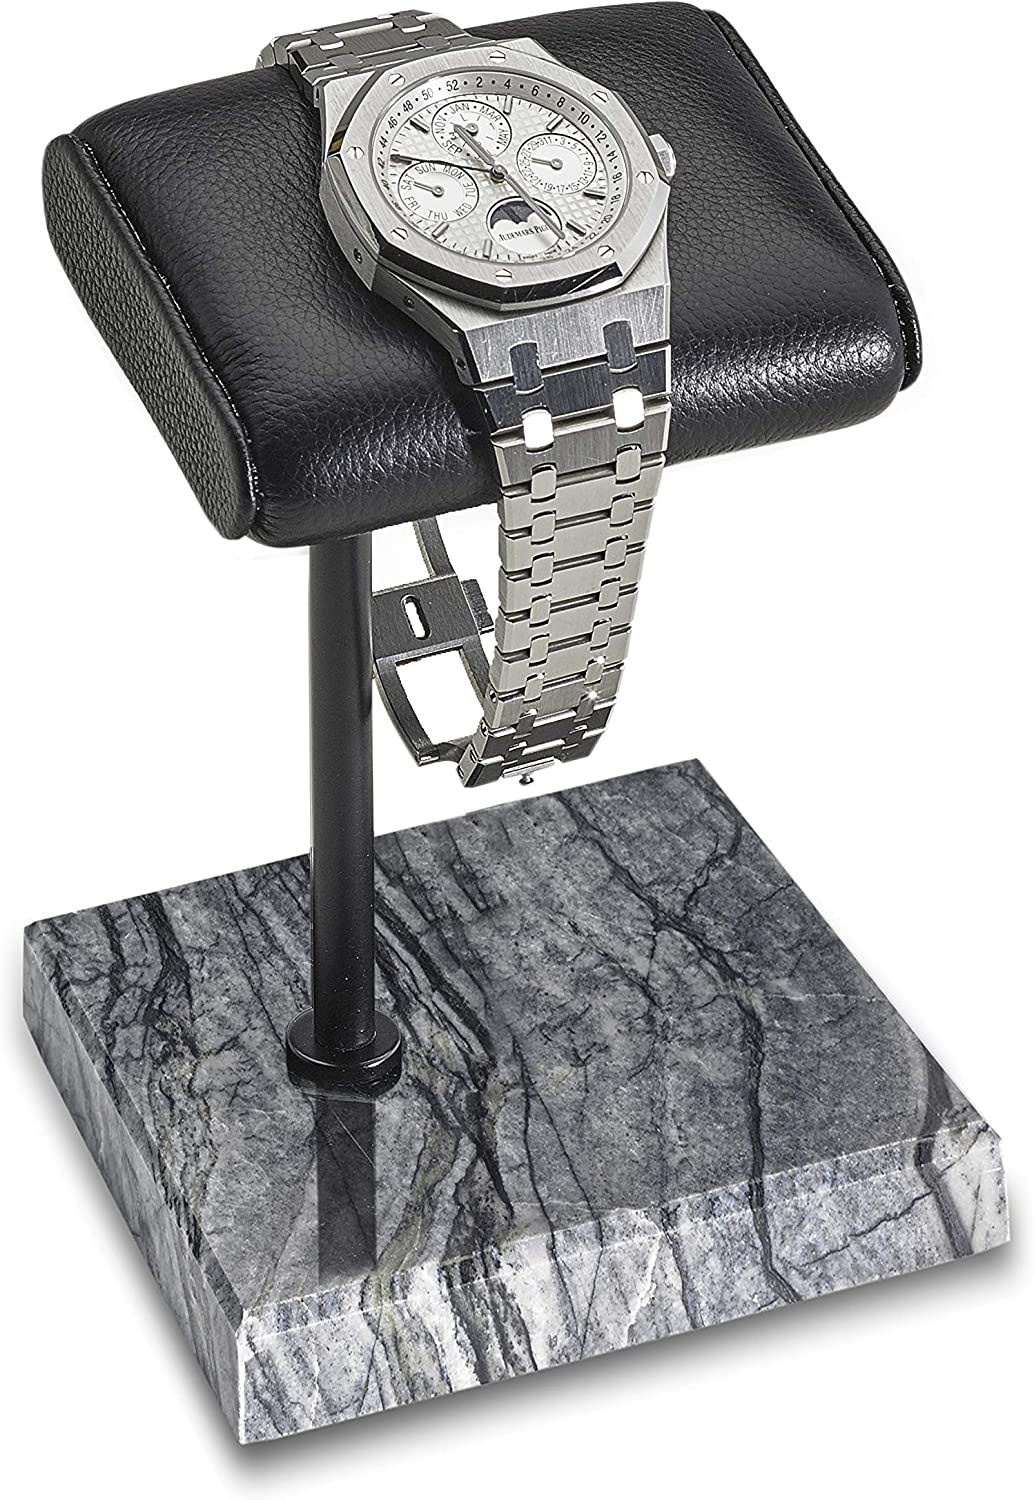 Handcrafted Leather & Marble Watch Display Stand for Rolex, Omega, Patek Philippe, Audemars Piguet, Richard Mille, Breitling, Tudor, Cartier, TAG Heuer (Black/Black/Black)